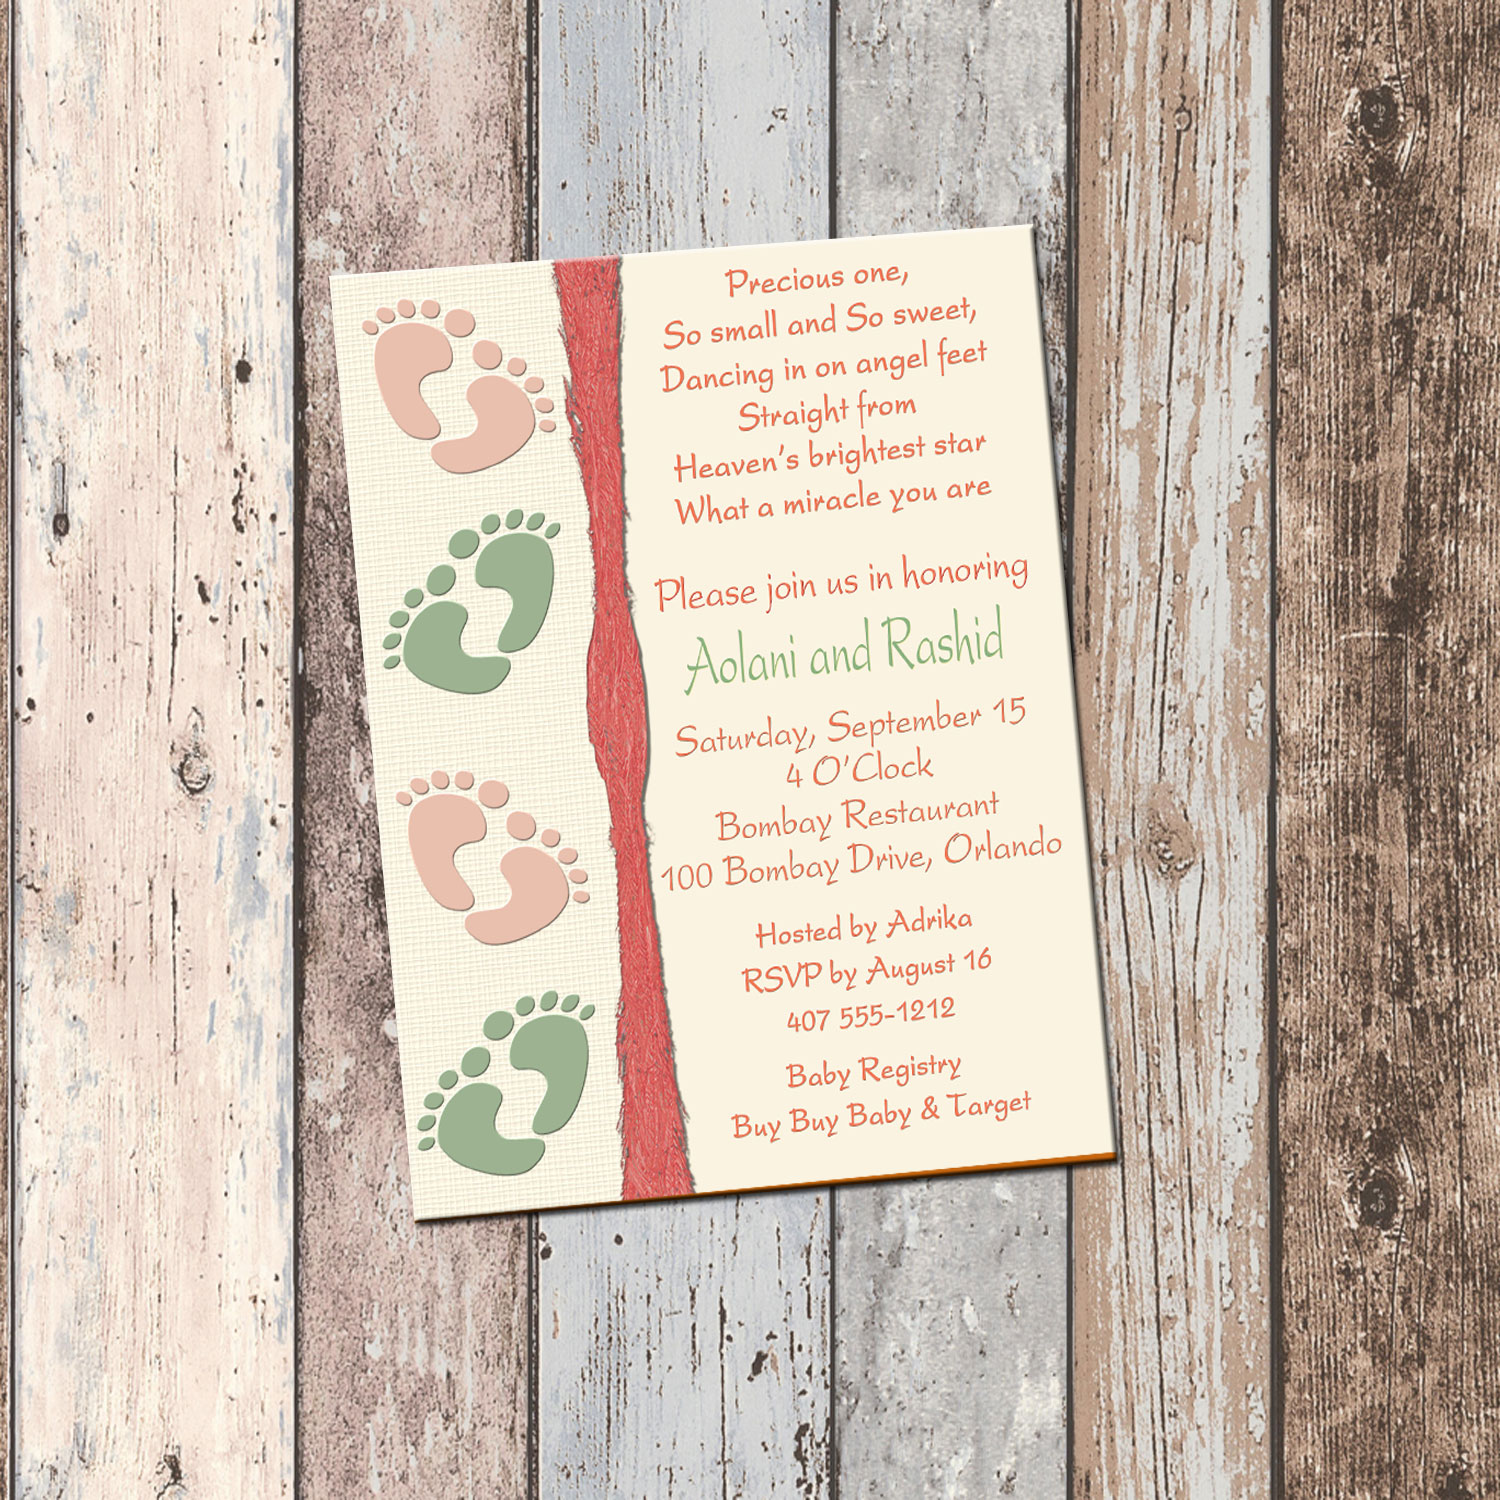 Baby Feet Couples Baby Shower Invitation 1 Sided Scg Designs